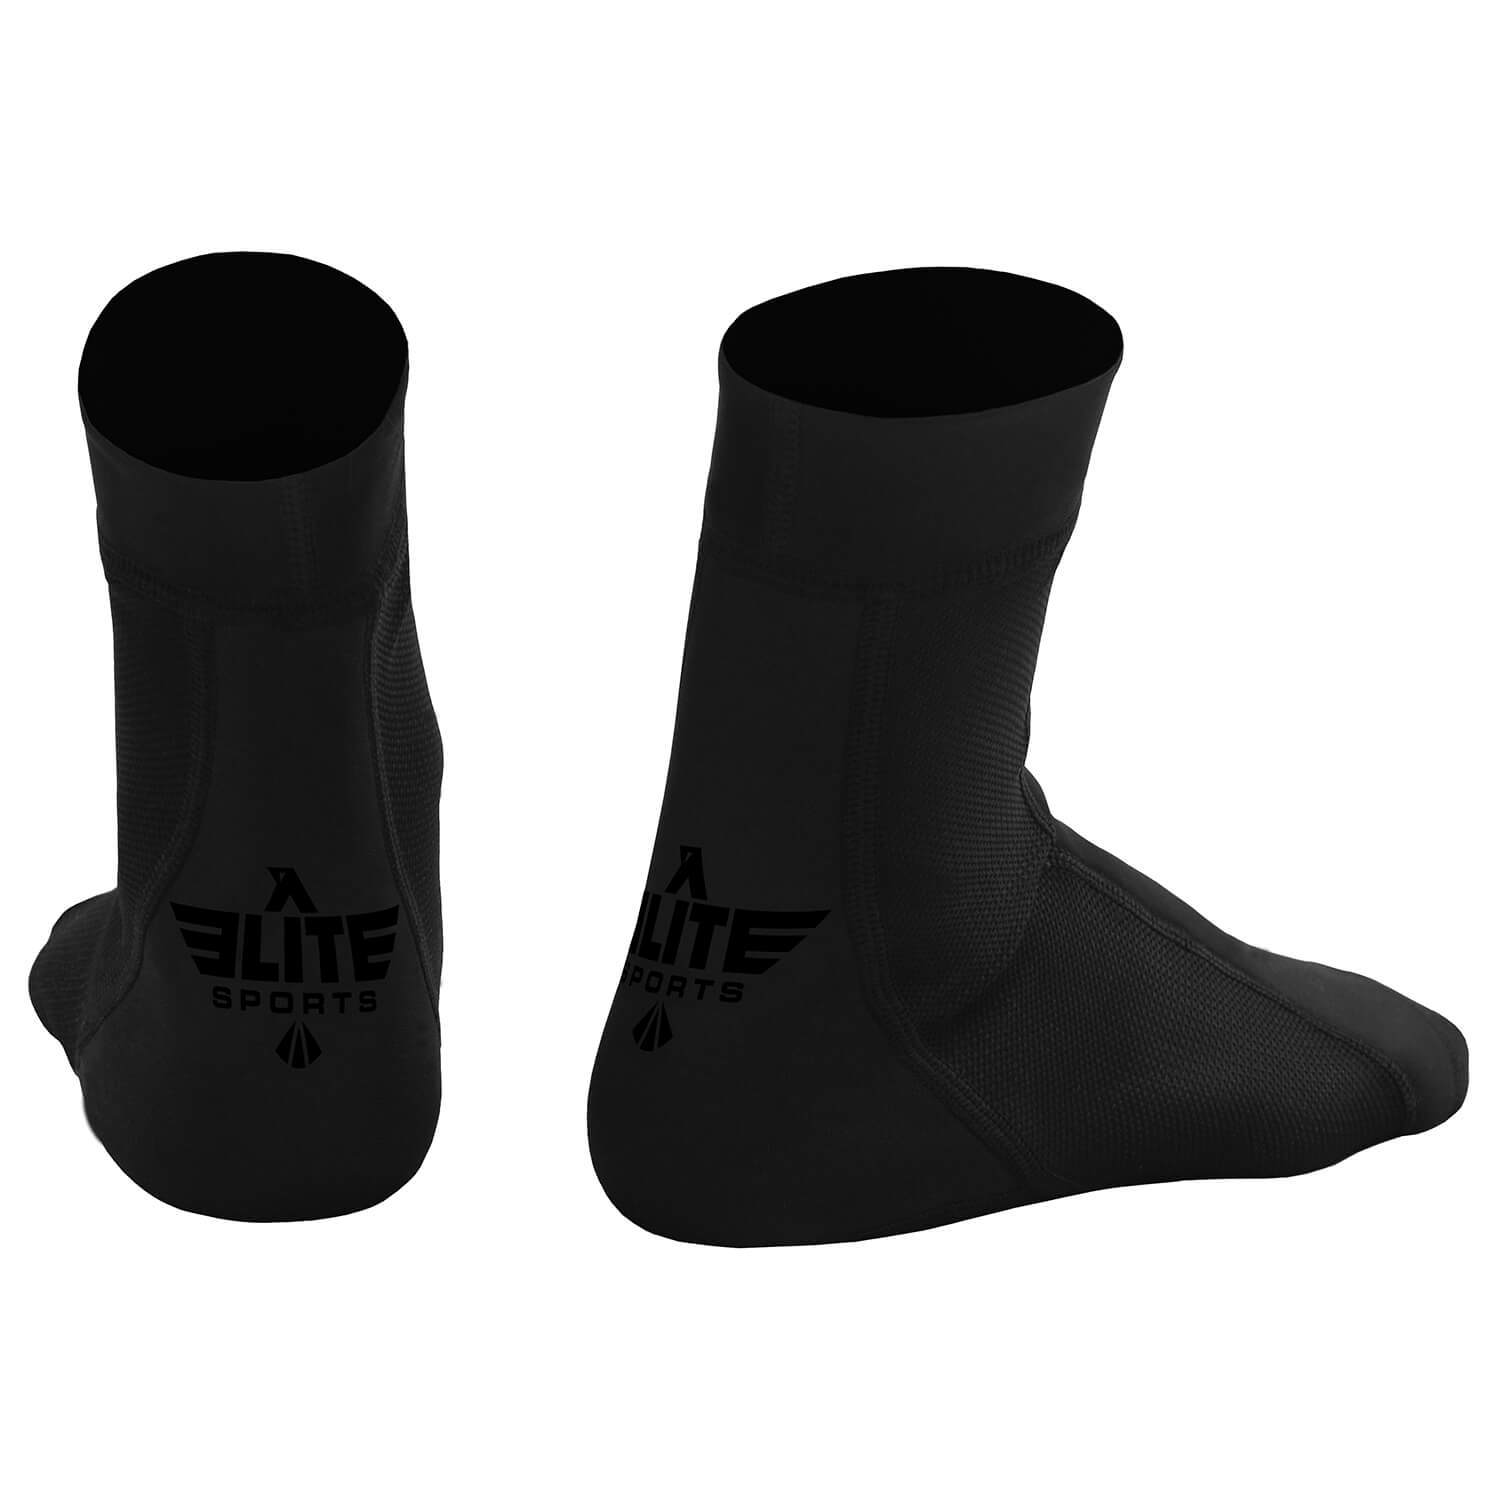 Load image into Gallery viewer, Elite Sports Black Training Foot Grips